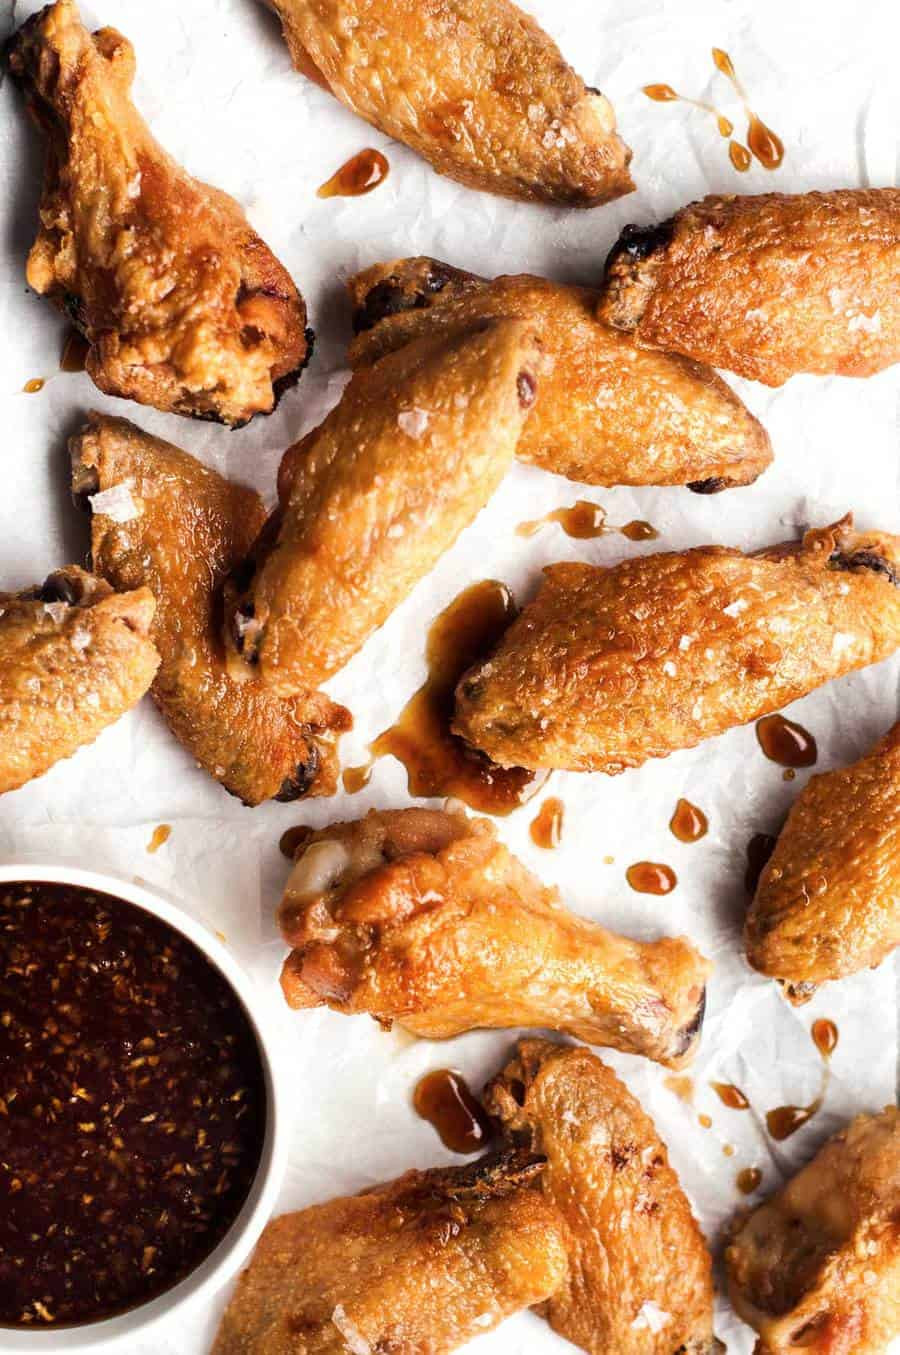 Baked Chicken Wings Crispy  Truly Crispy Oven Baked Chicken Wings with Honey Garlic